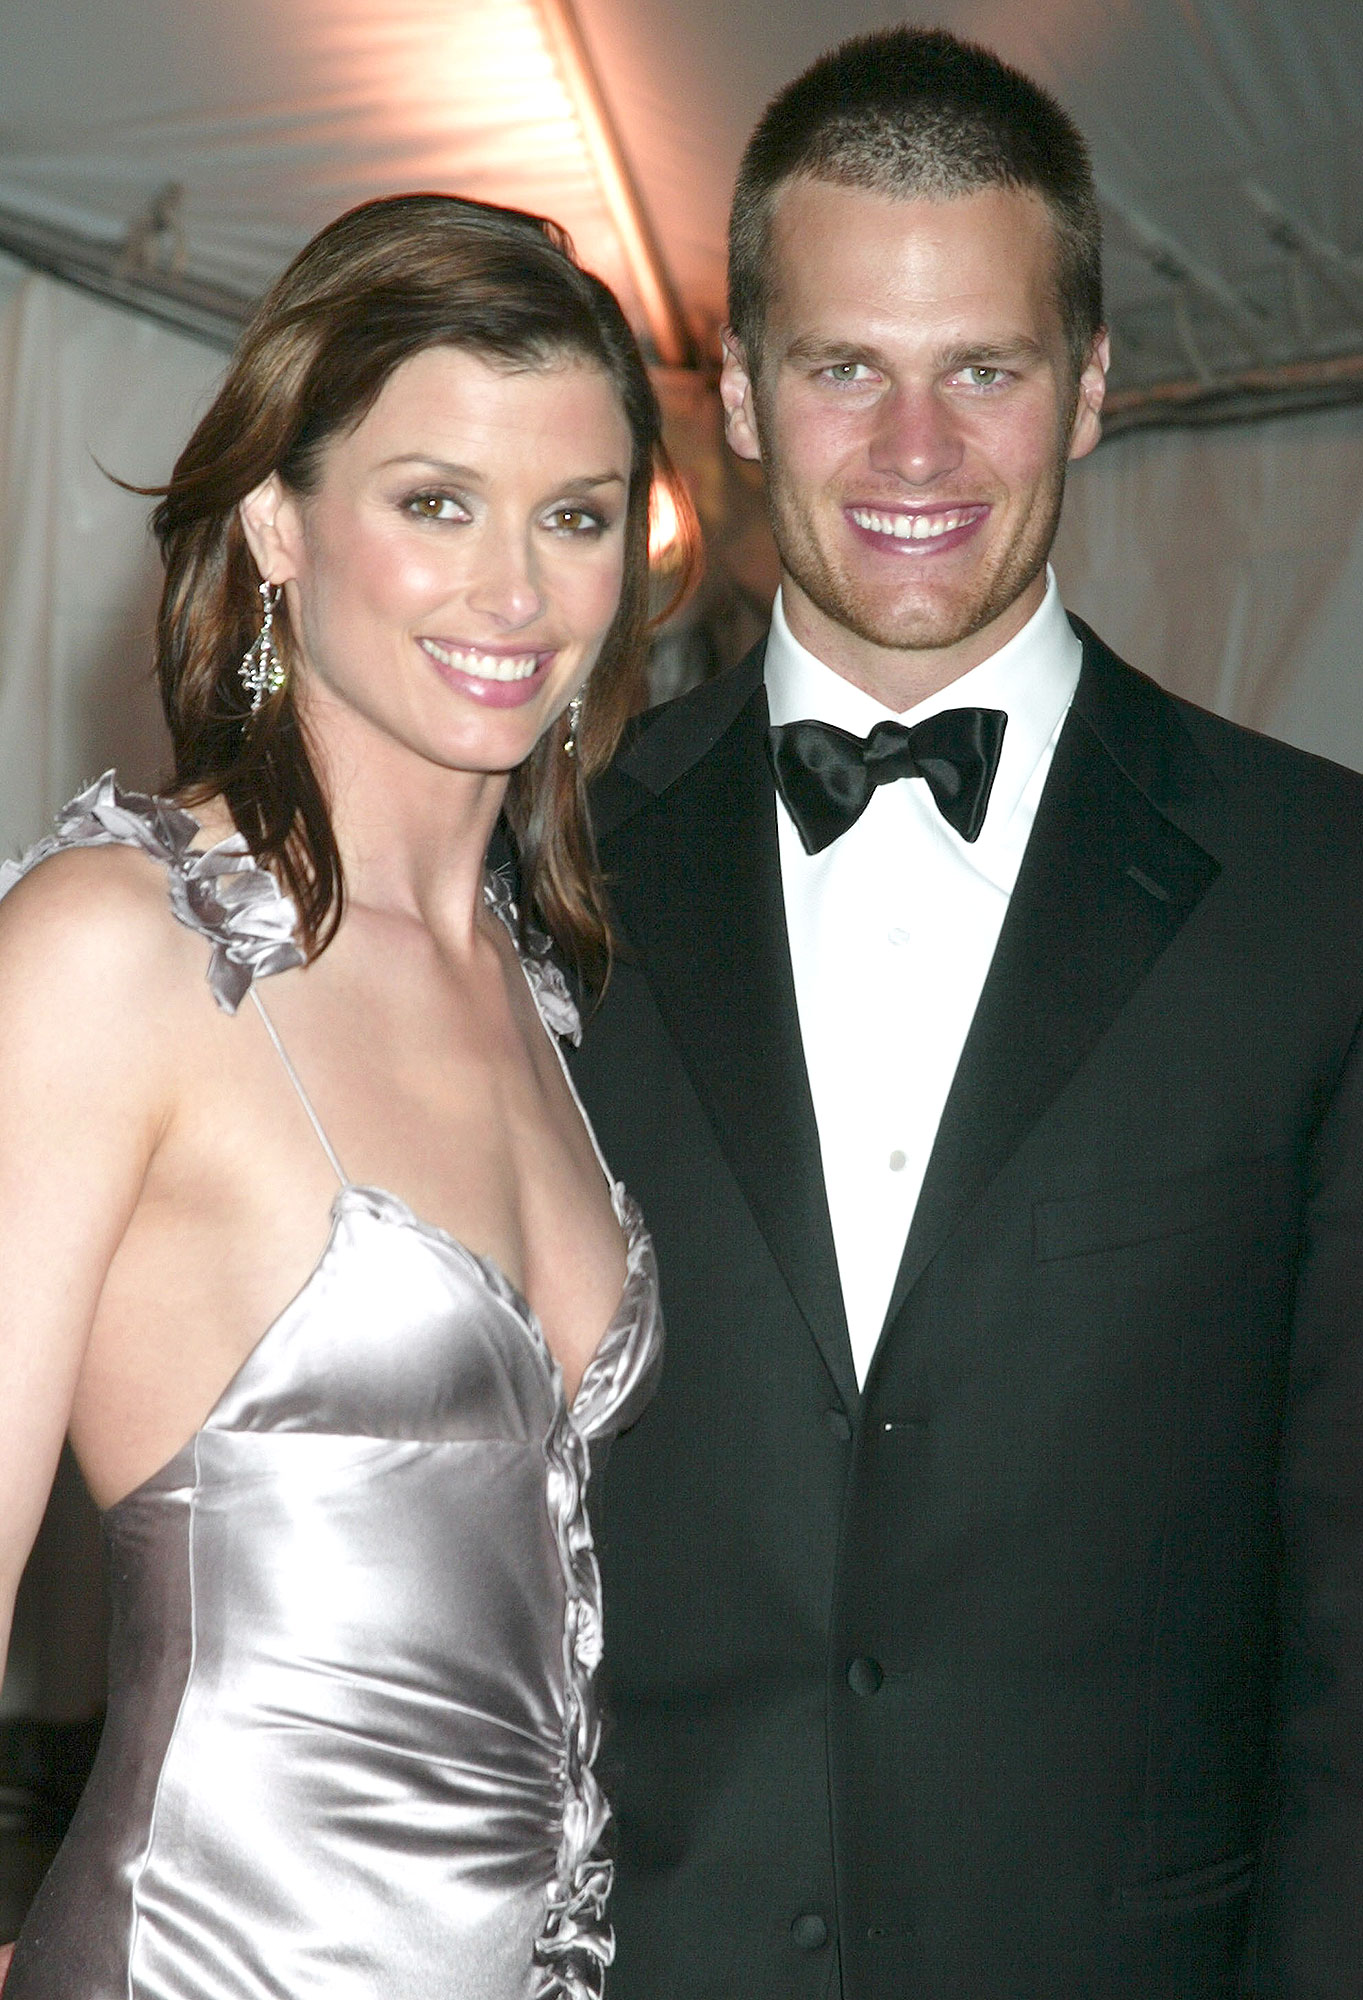 Bridget Moynahan and Tom Brady (Photo by Gregory Pace/FilmMagic)